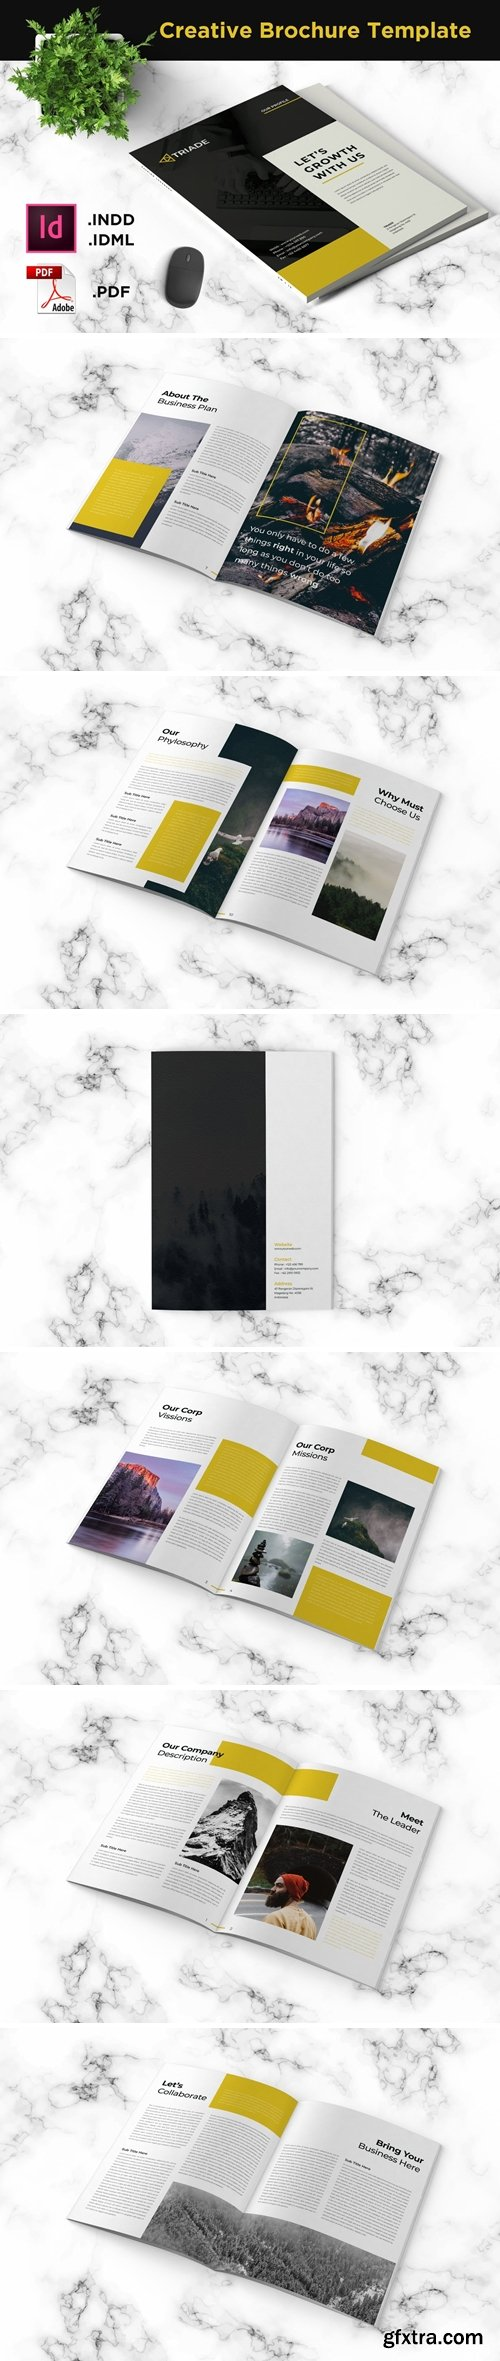 Brochure Template - iWantemp